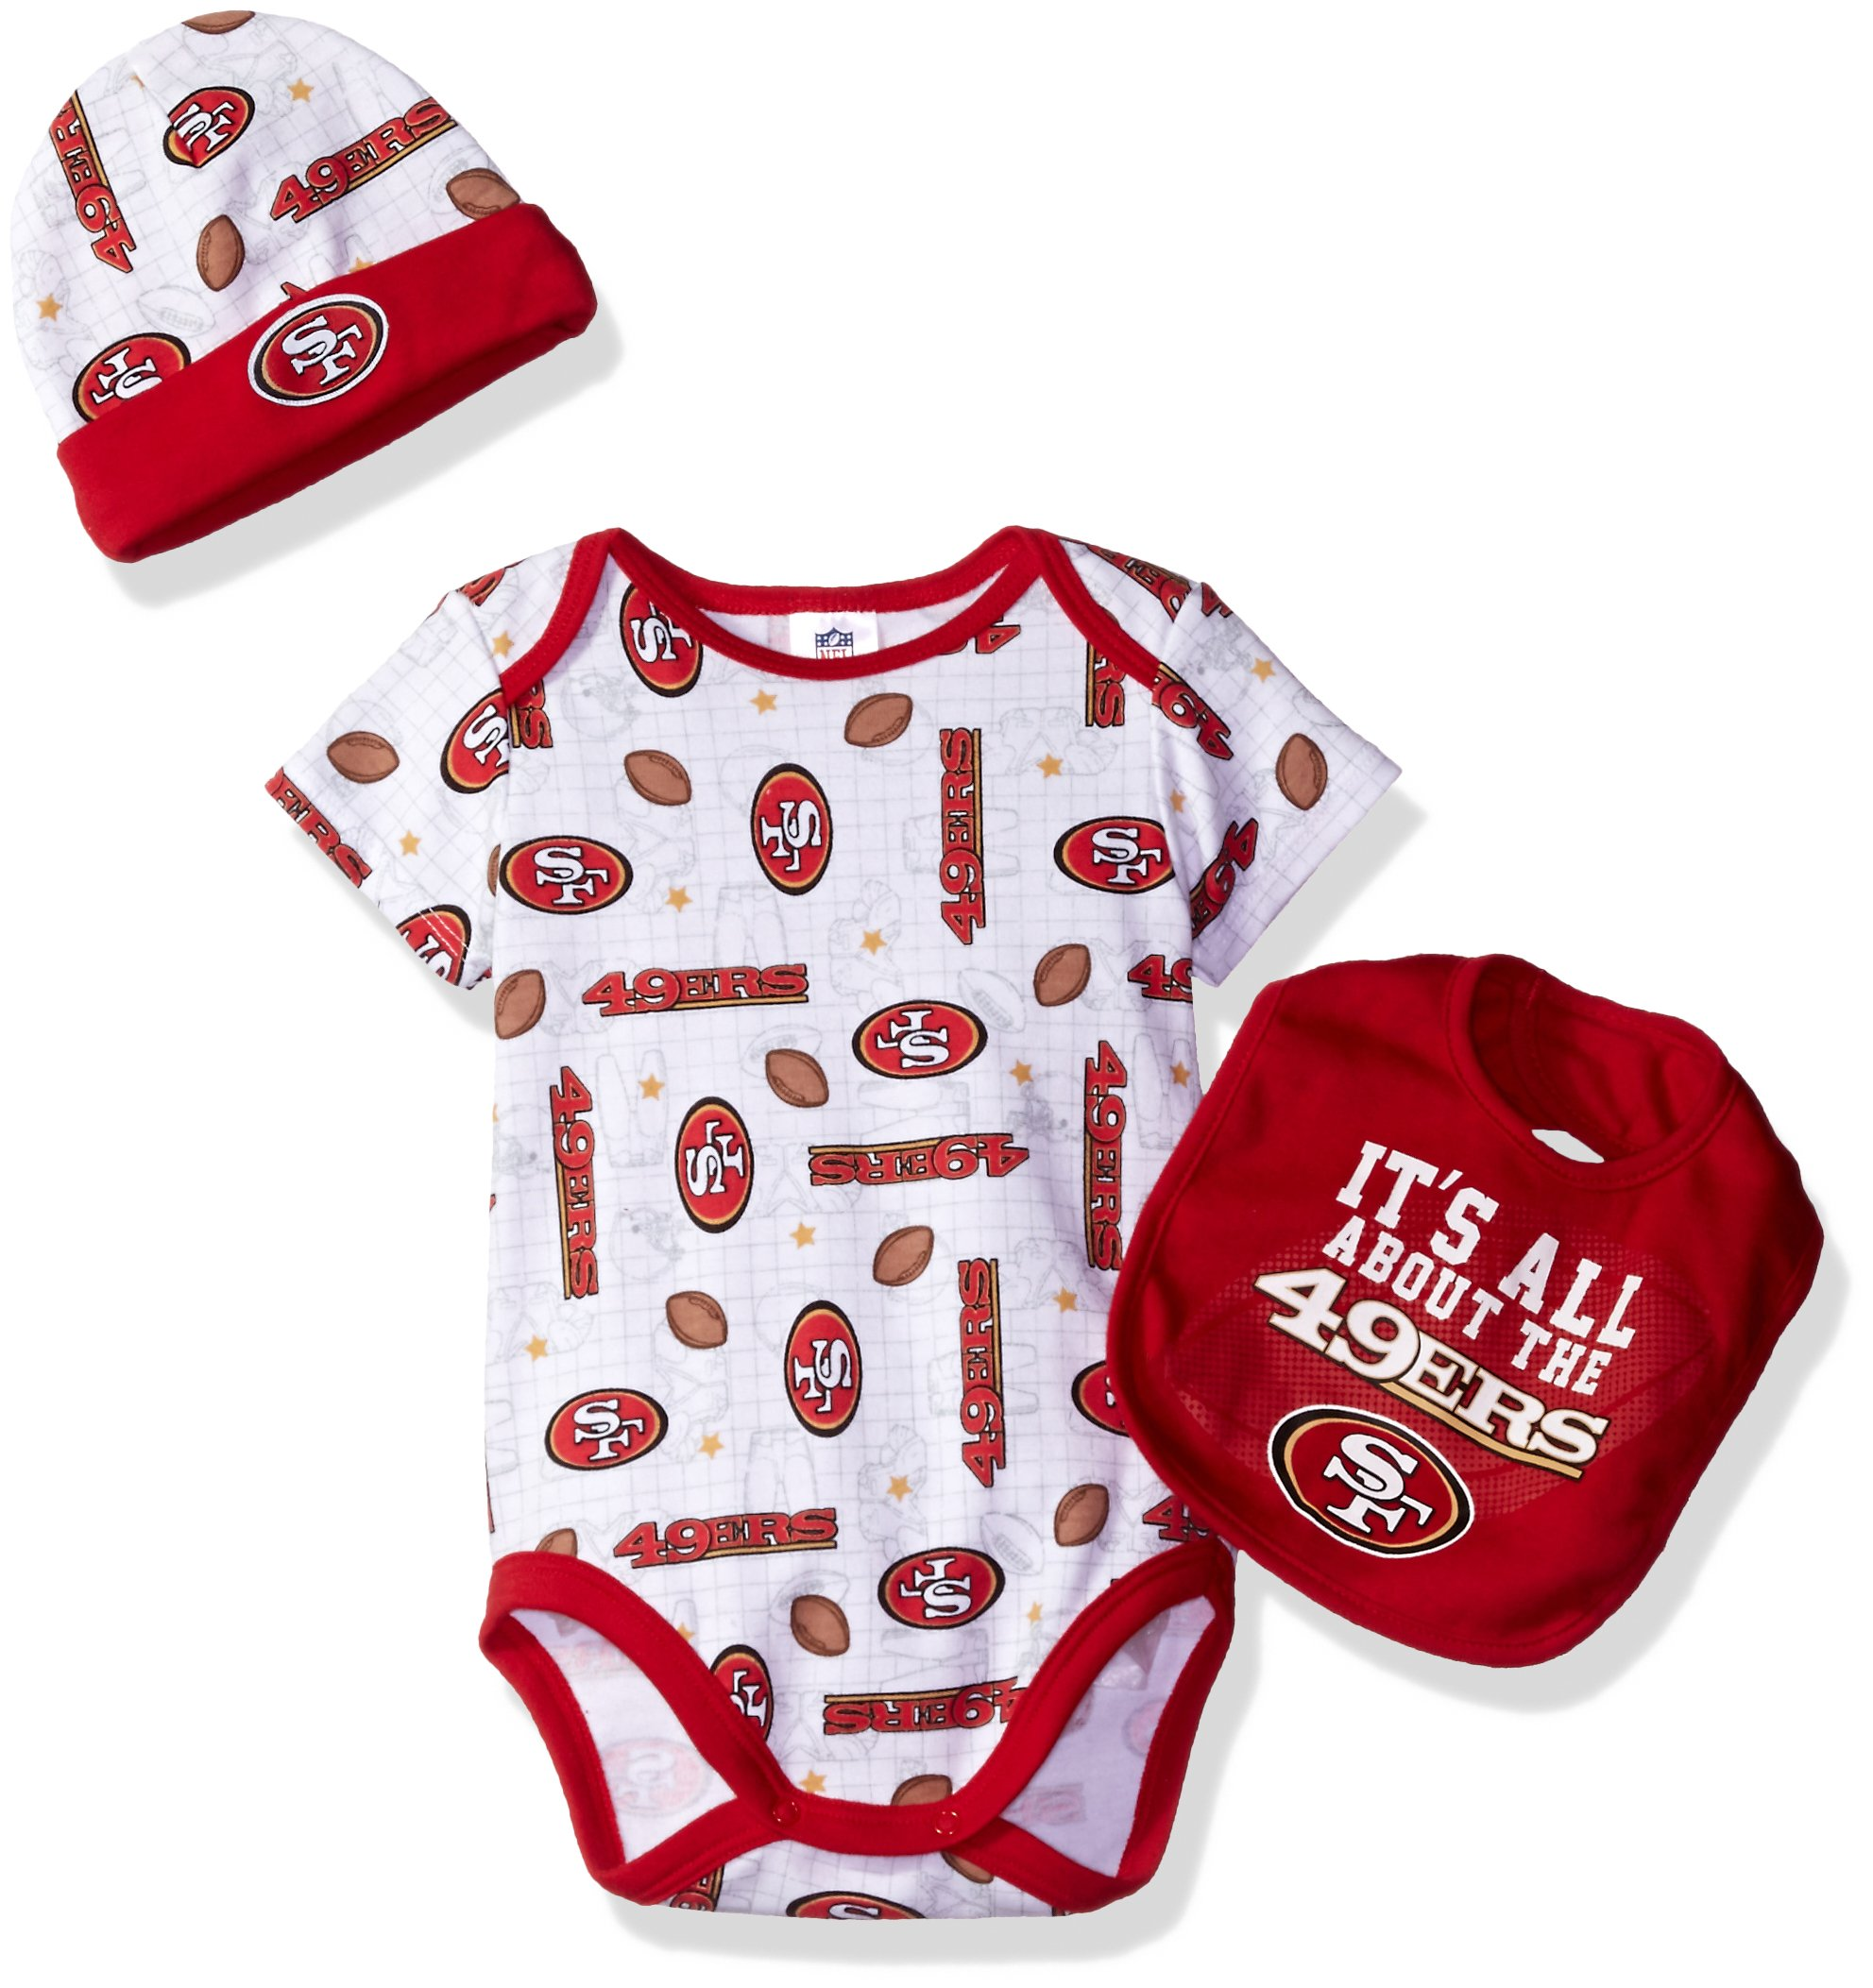 Amazon NFL San Francisco 49ers Baby Gift Set Discontinued by